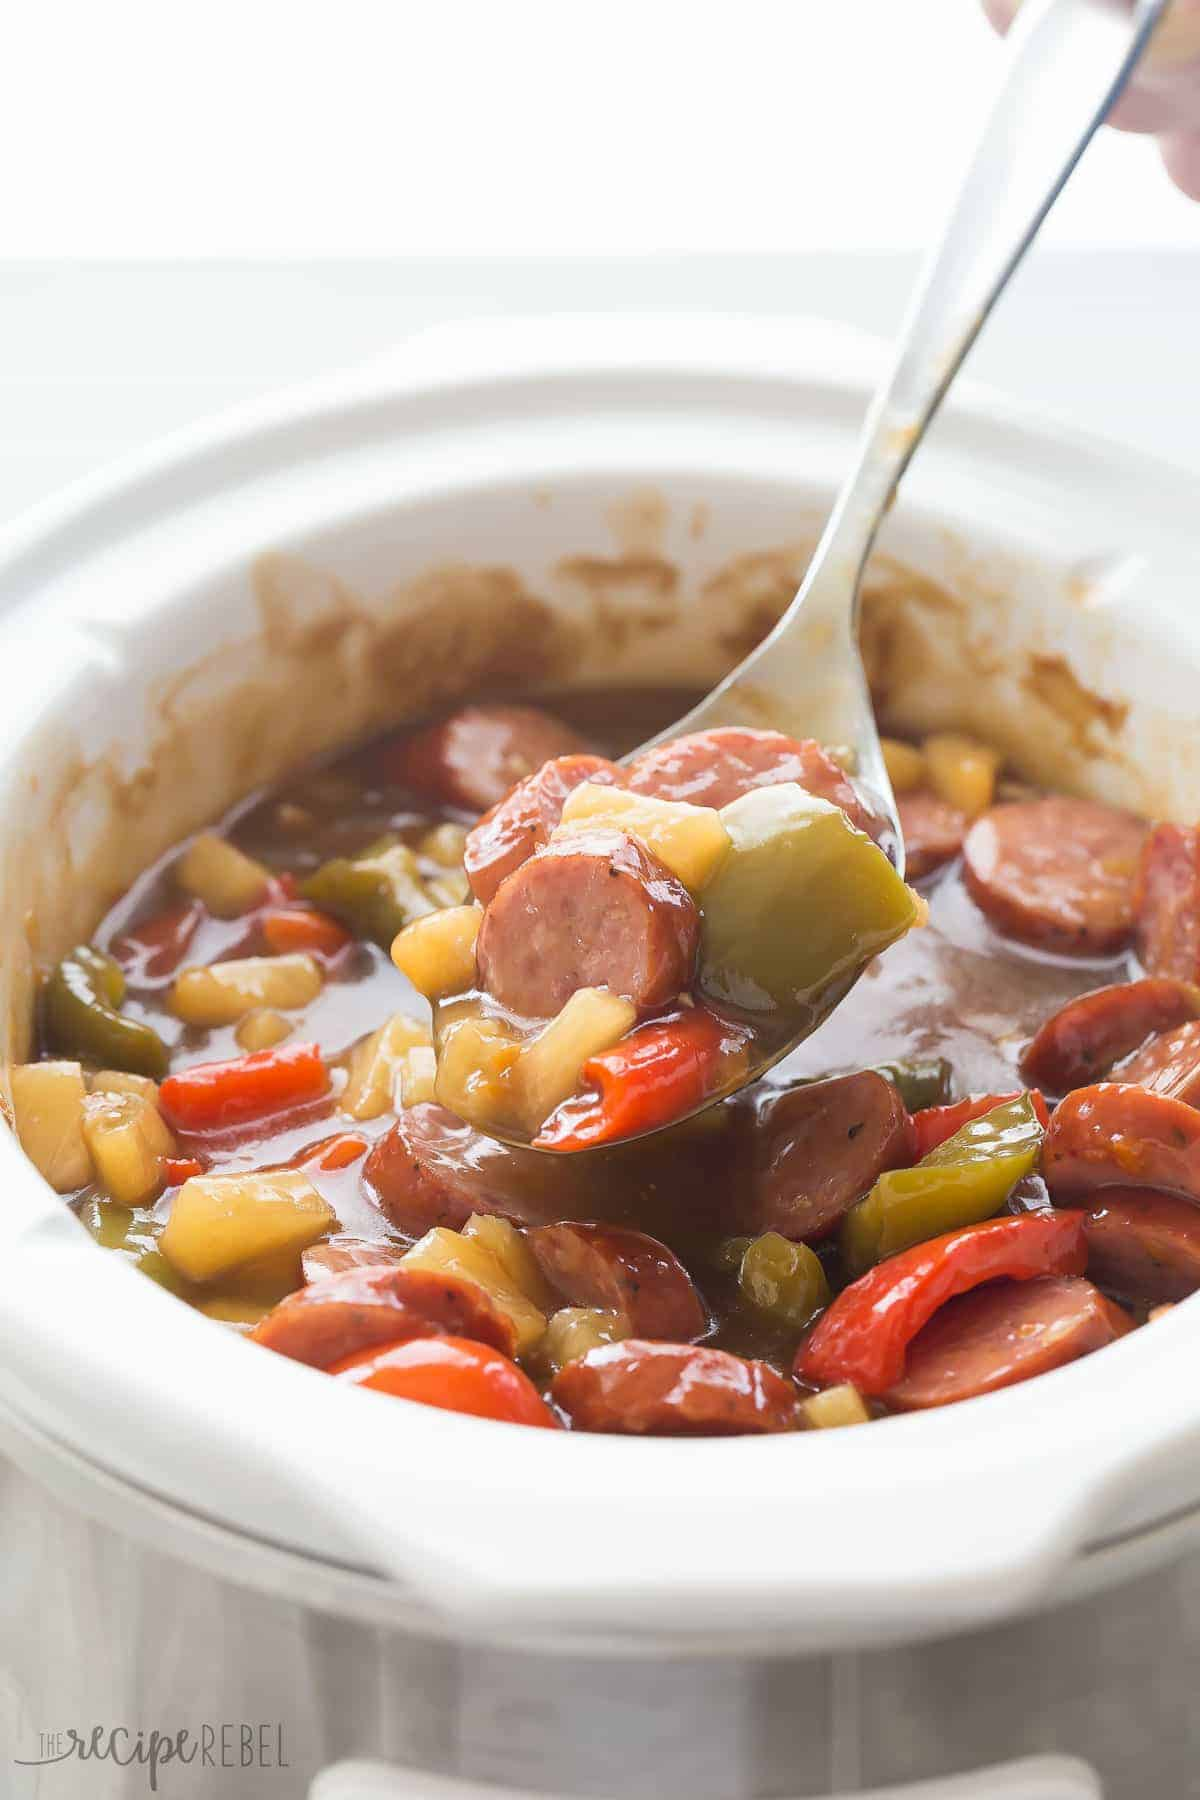 These Sweet & Sour Slow Cooker Smokies are an easy holiday appetizer or weeknight meal! Just a few minutes prep and let them cook away in the crockpot. Includes step by step recipe video. | slow cooker appetizer | slow cooker recipe | crock pot appetizer | holiday dish | game day | superbowl | potluck recipe | easy recipe